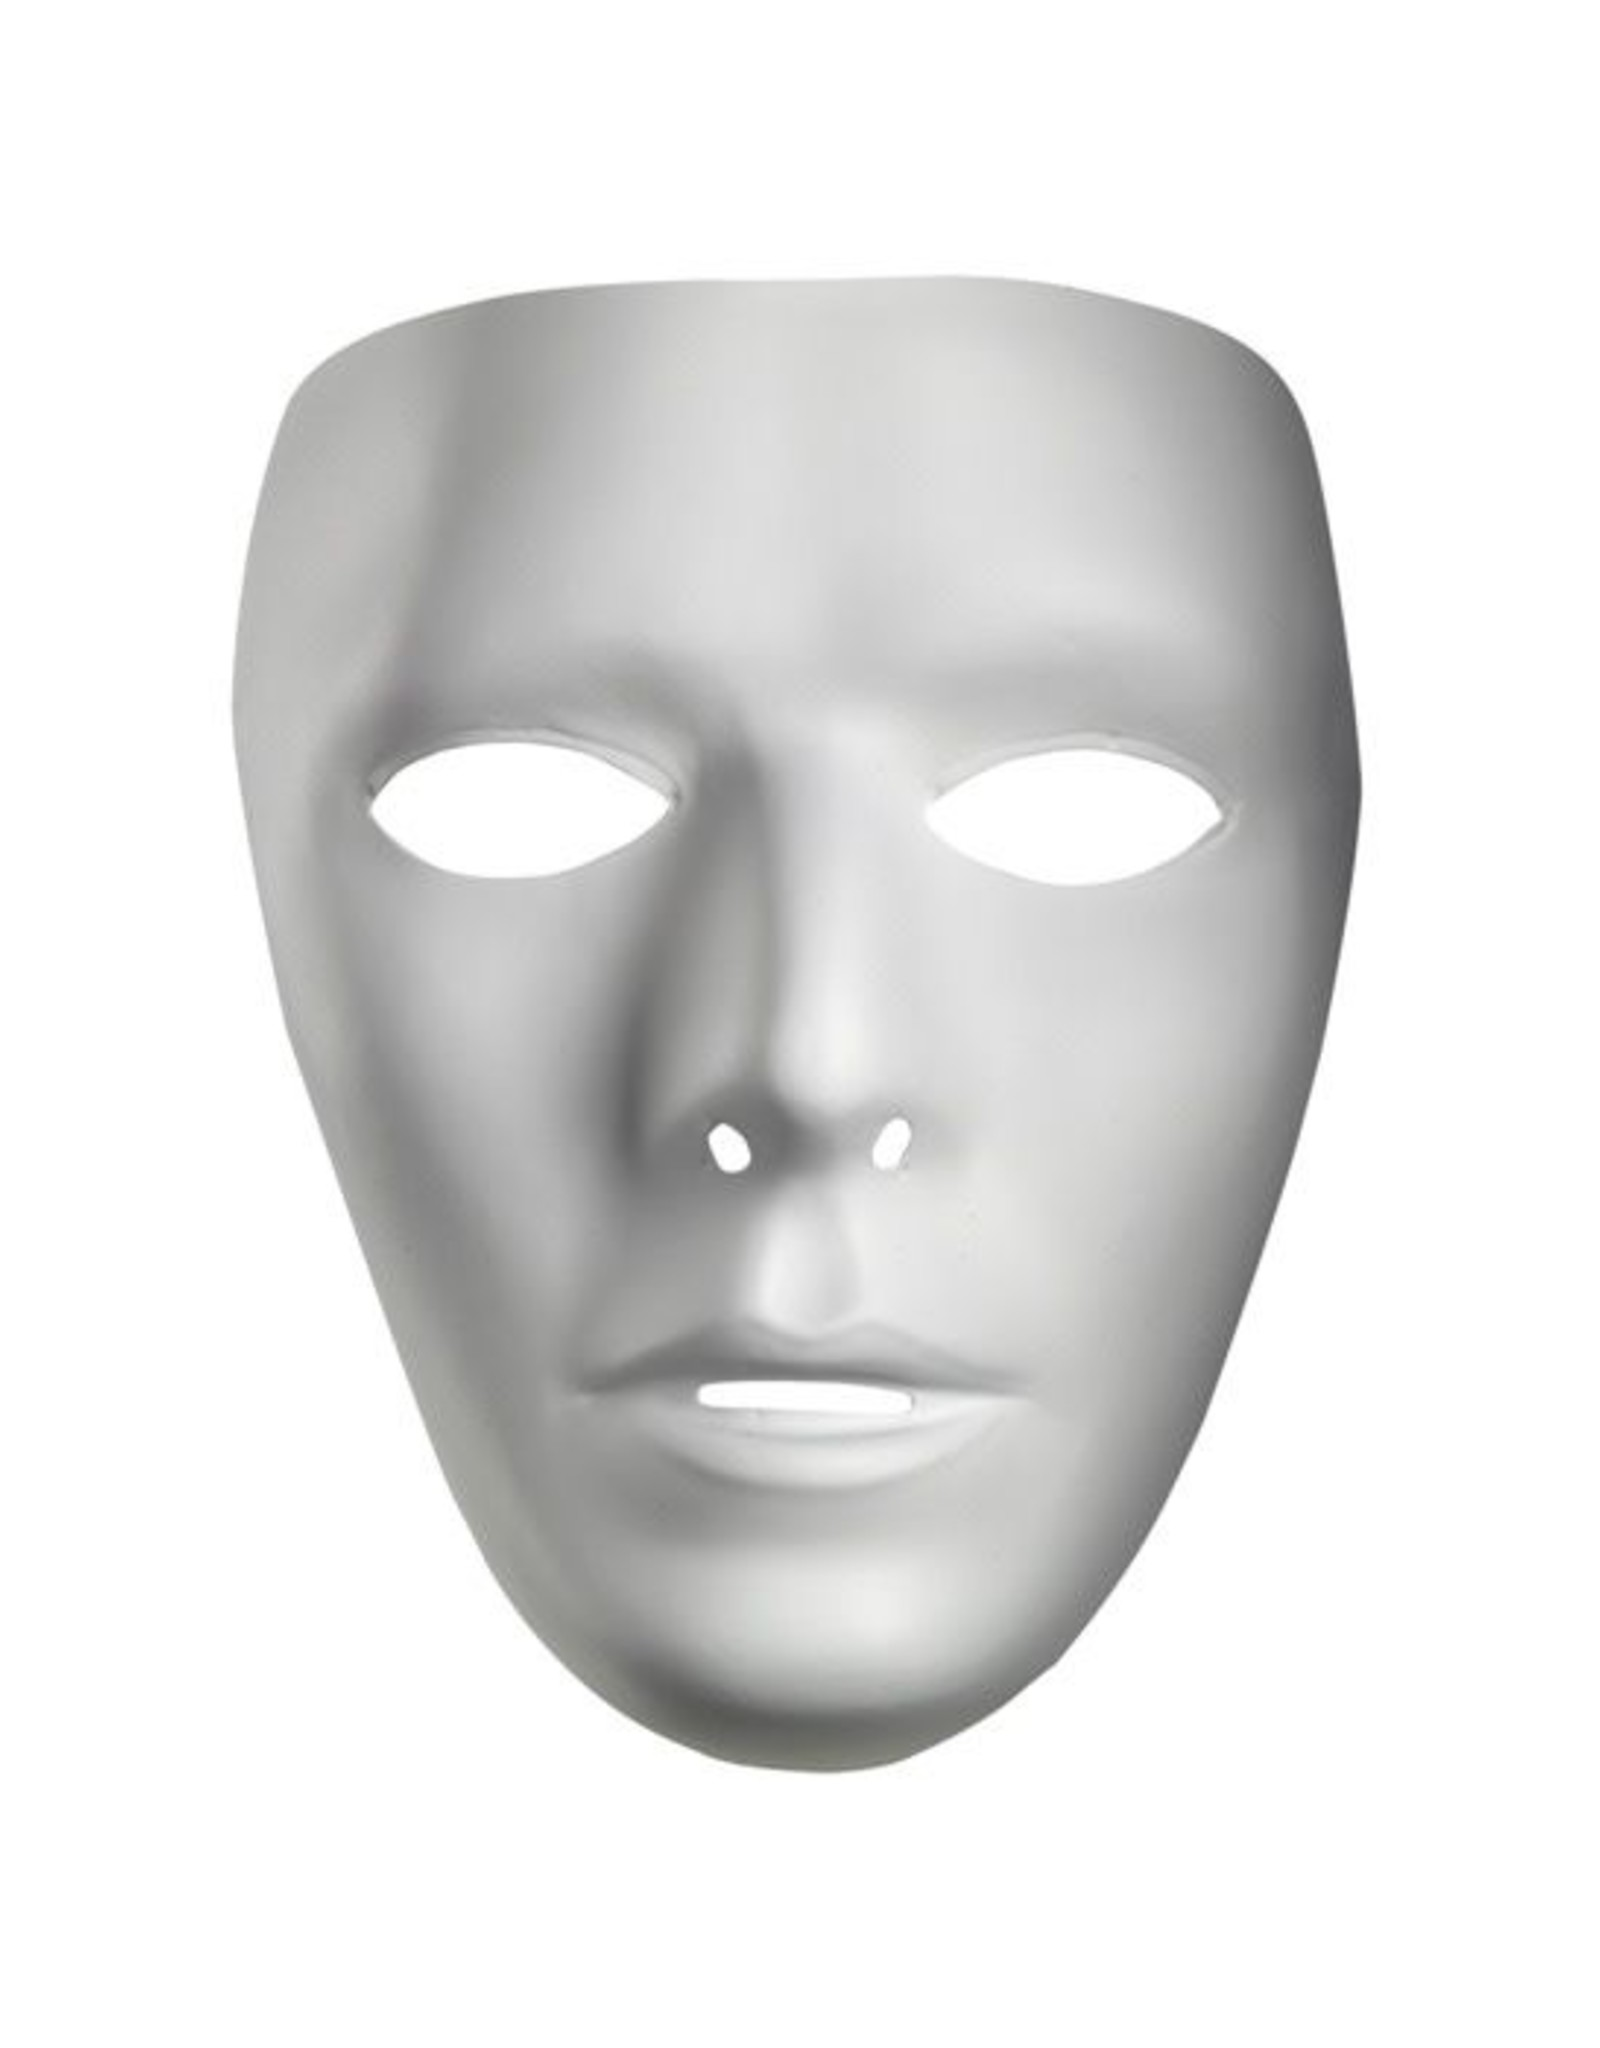 Disguise Blank White Mask